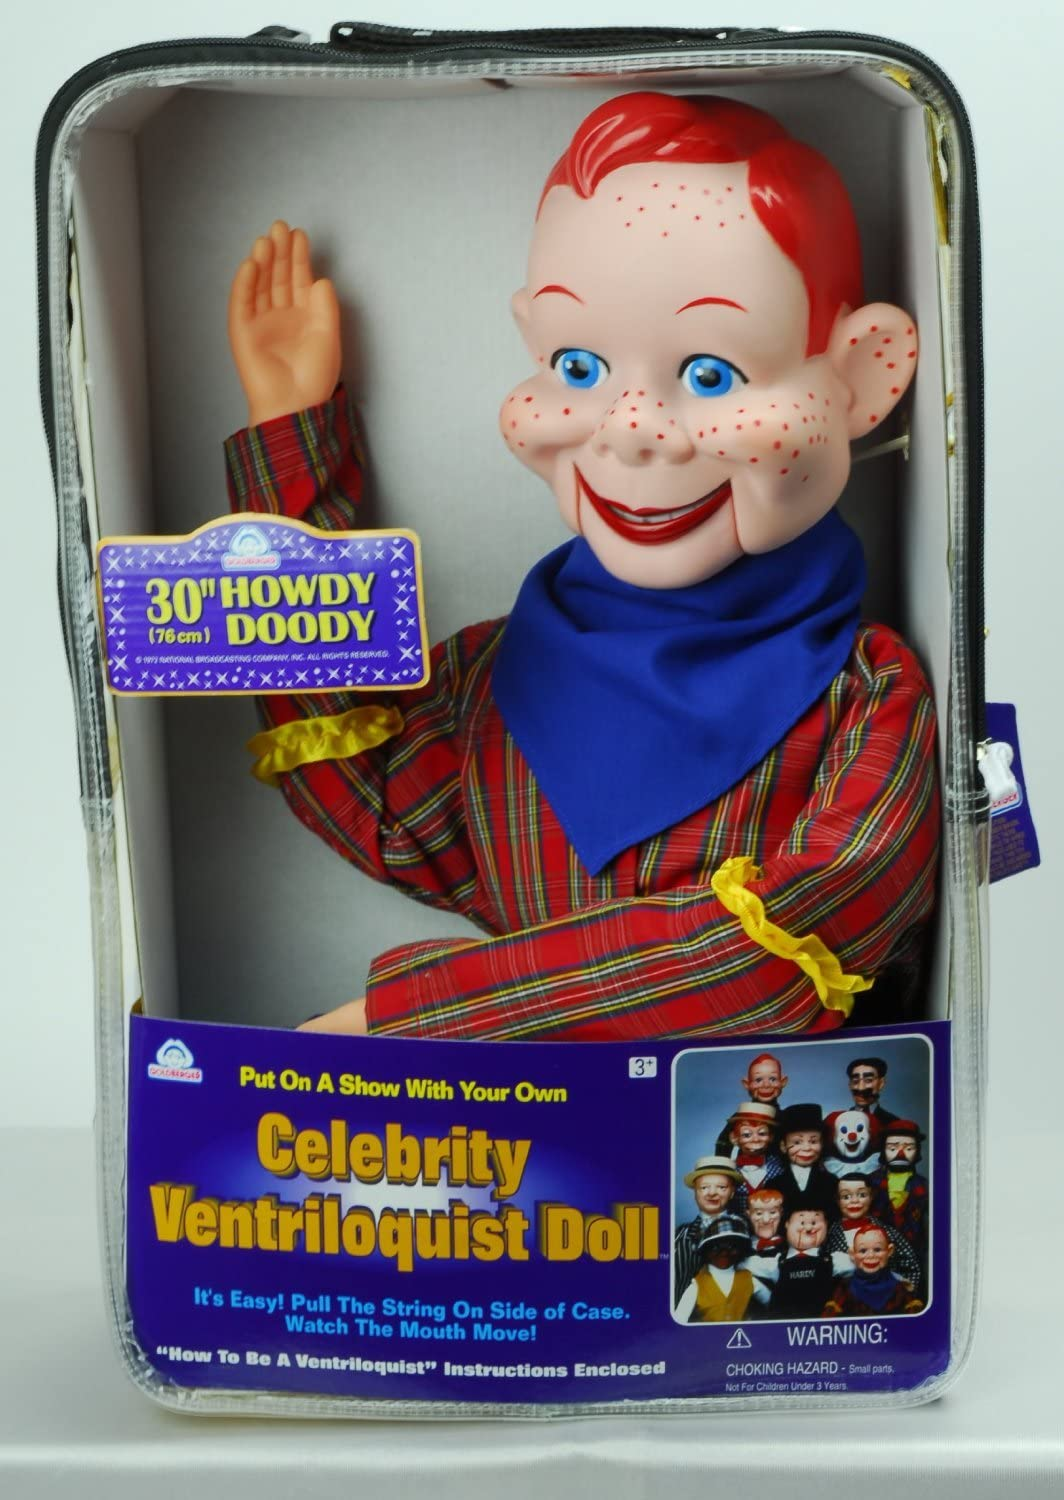 Howdy Doody Dummy Star Of Howdy Doody Tv Show, Celebrity Ventriloquist Doll